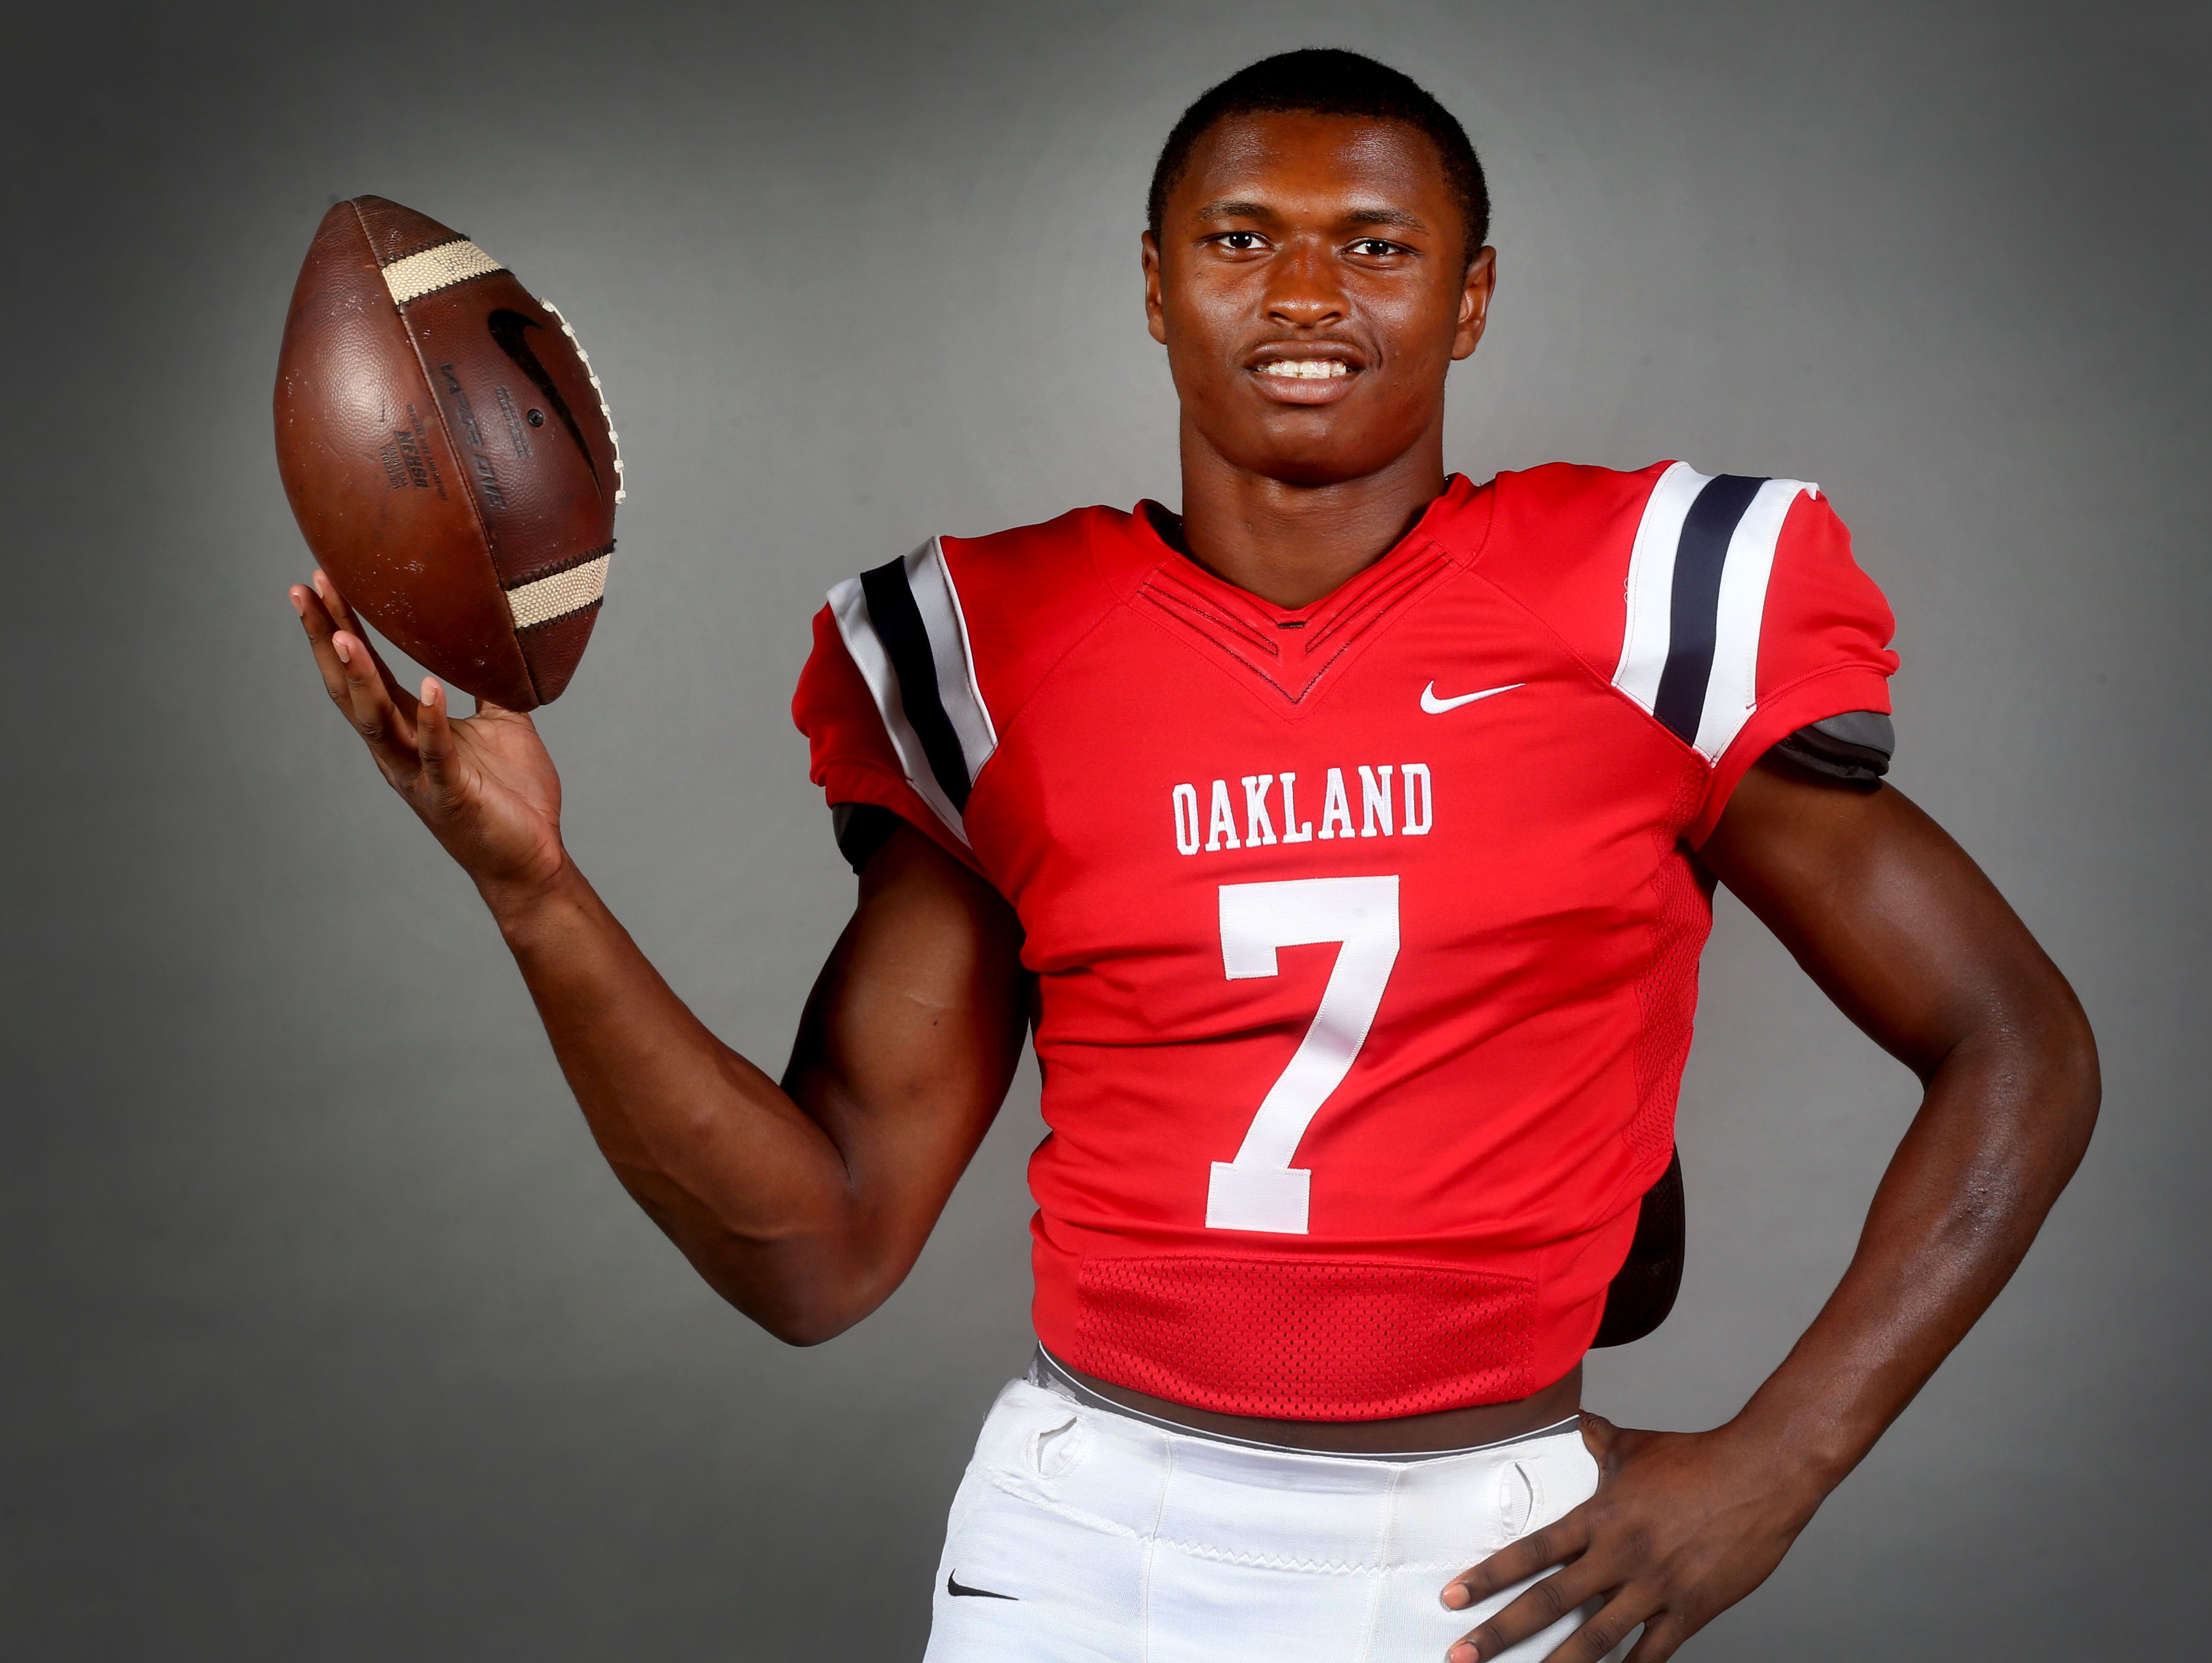 Oakland's JaCoby Stevens says he's sticking with his commitment to LSU for now.